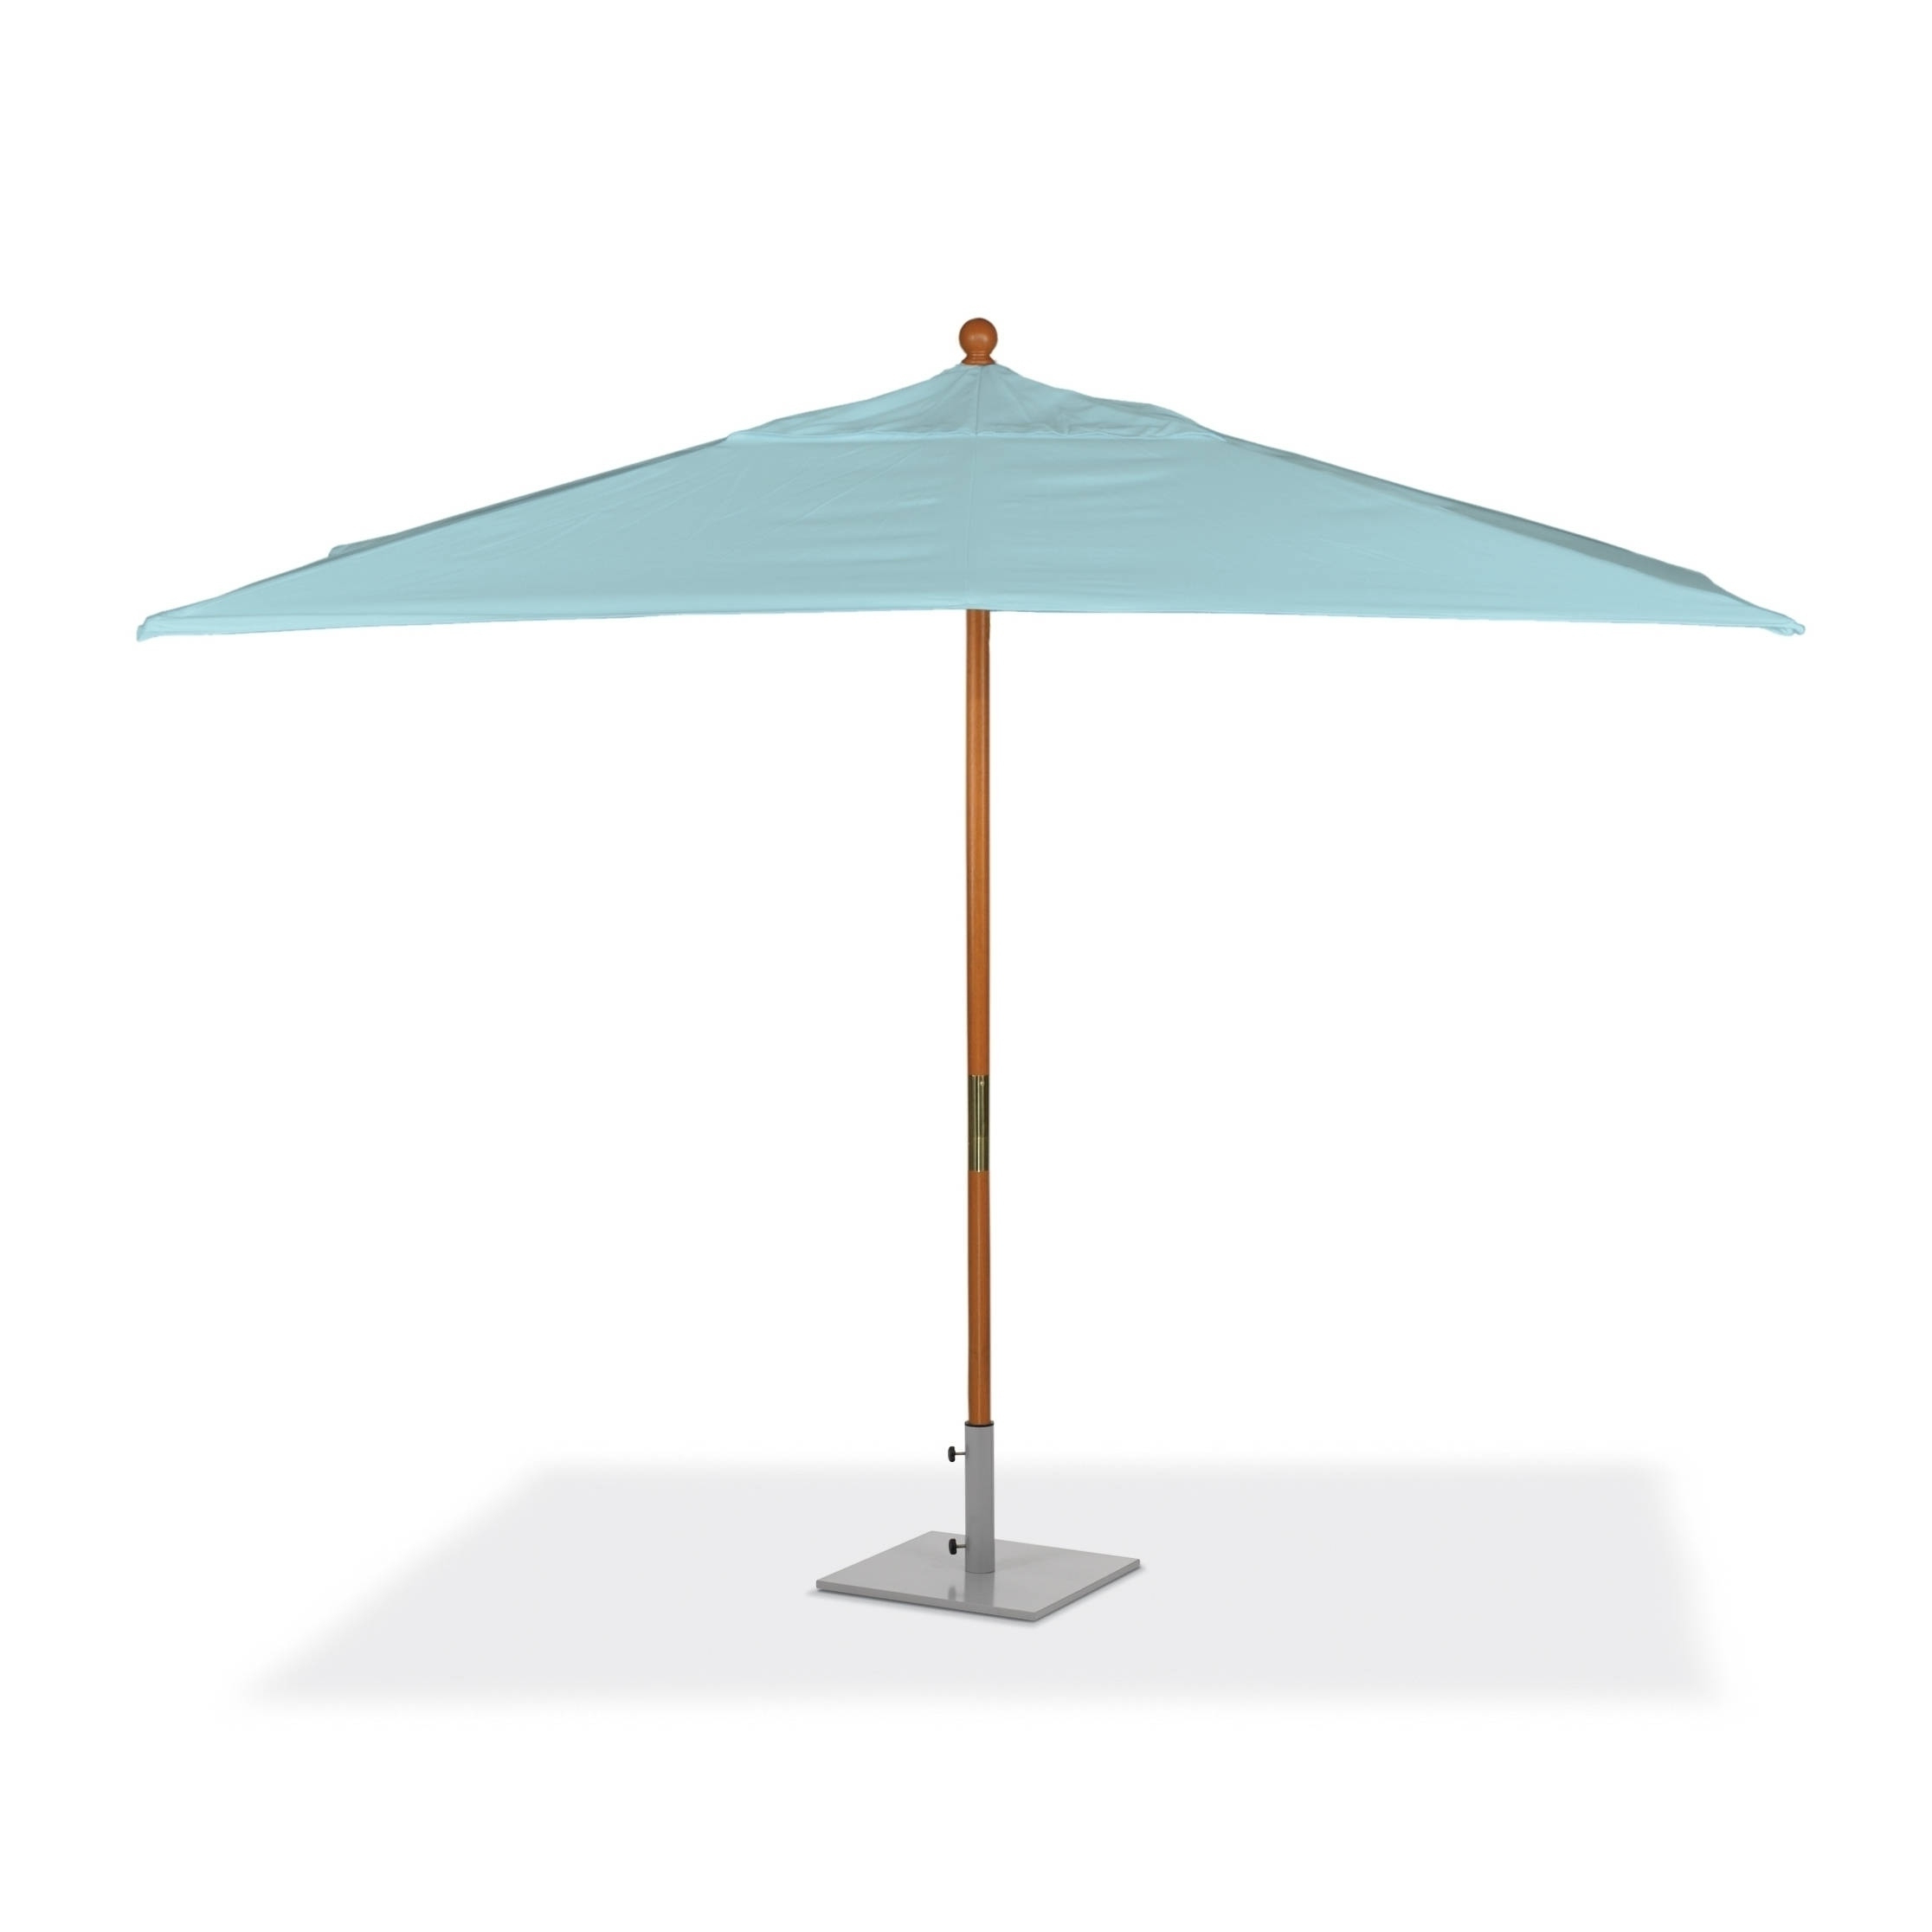 Oxford Garden 10 Feet Rectangular Mineral Blue Sunbrella Fabric Shade  Market Umbrella With Solid Tropical Hardwood Frame With Regard To Best And Newest Solid Rectangular Market Umbrellas (View 12 of 20)